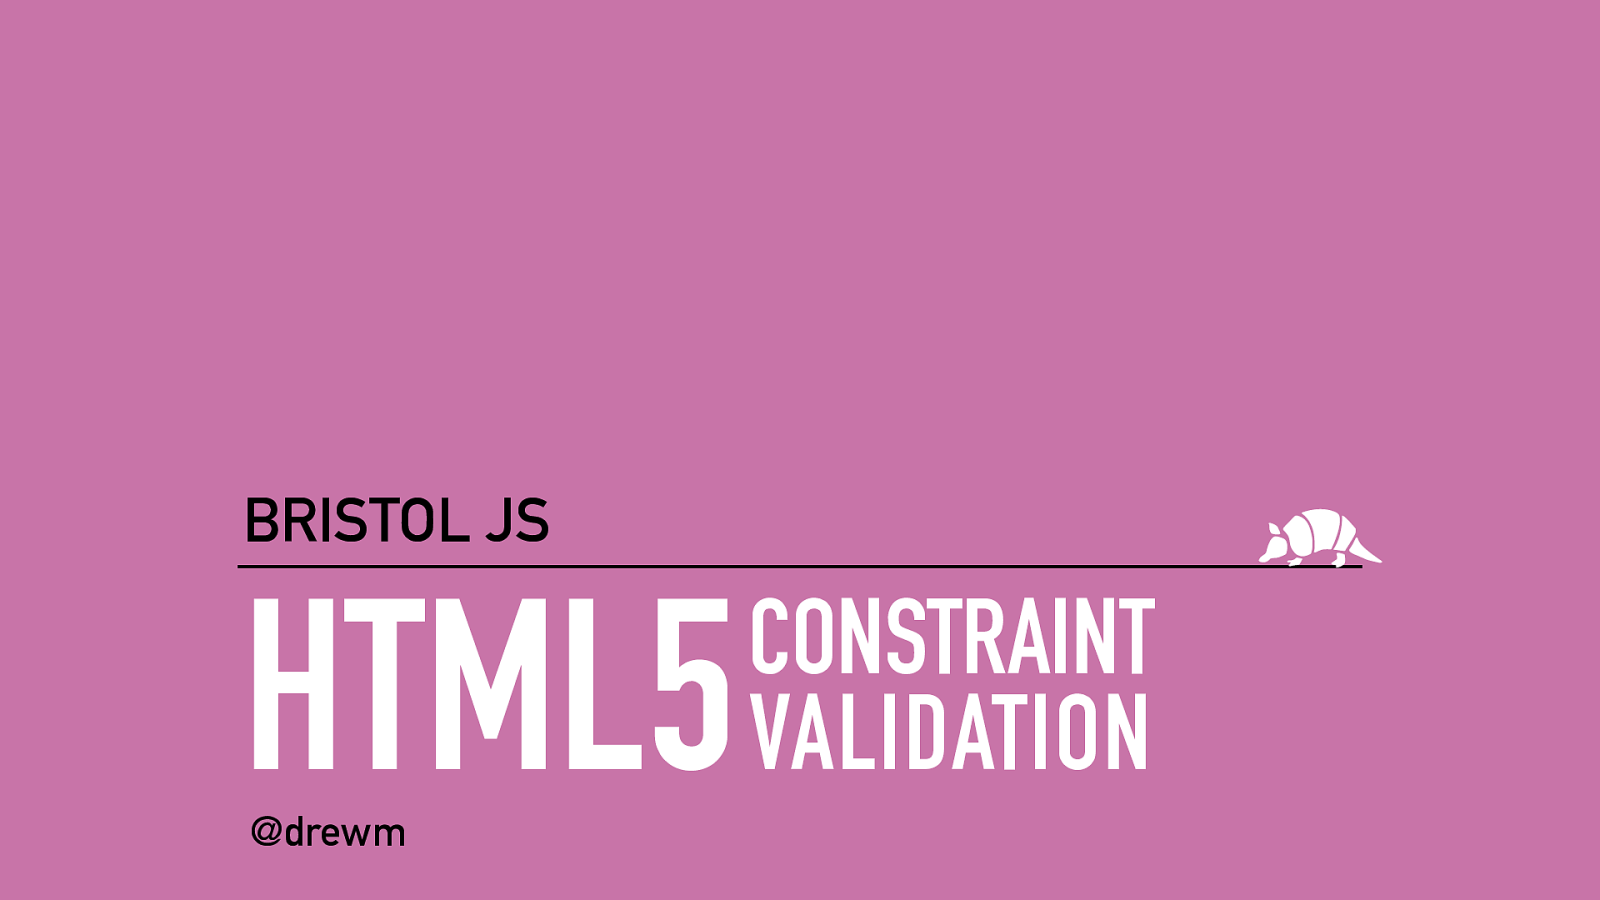 HTML5 Constraint Validation